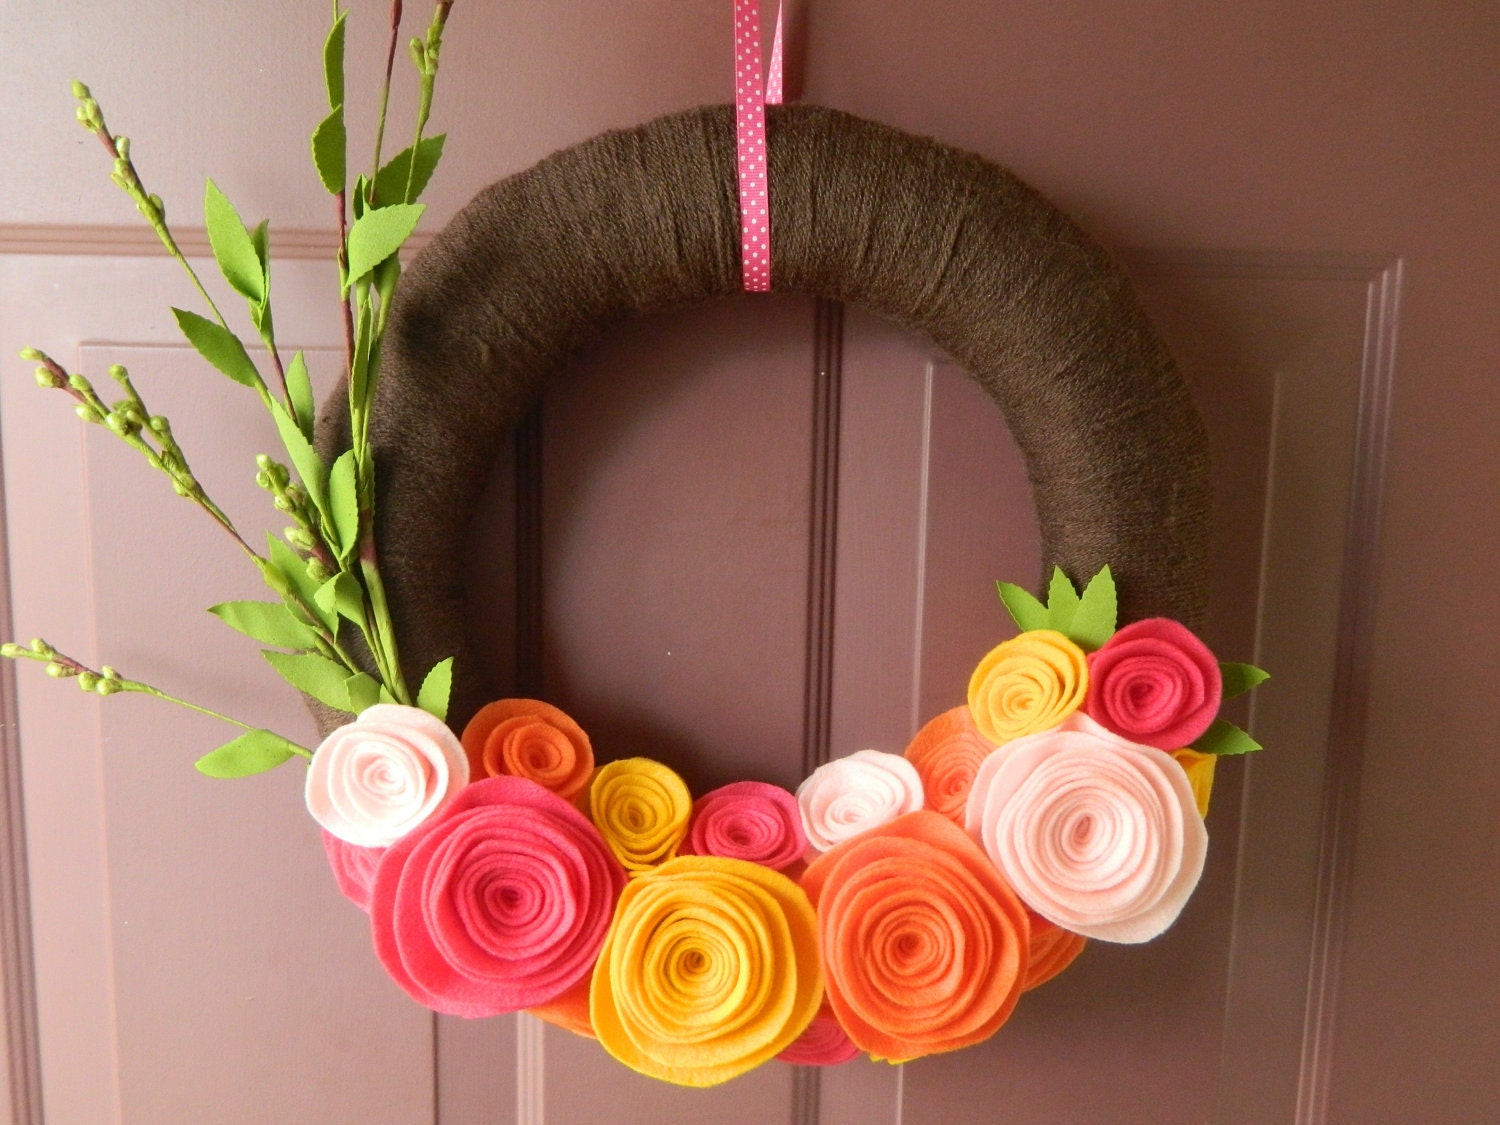 Handmade decorative item for Handmade items for home